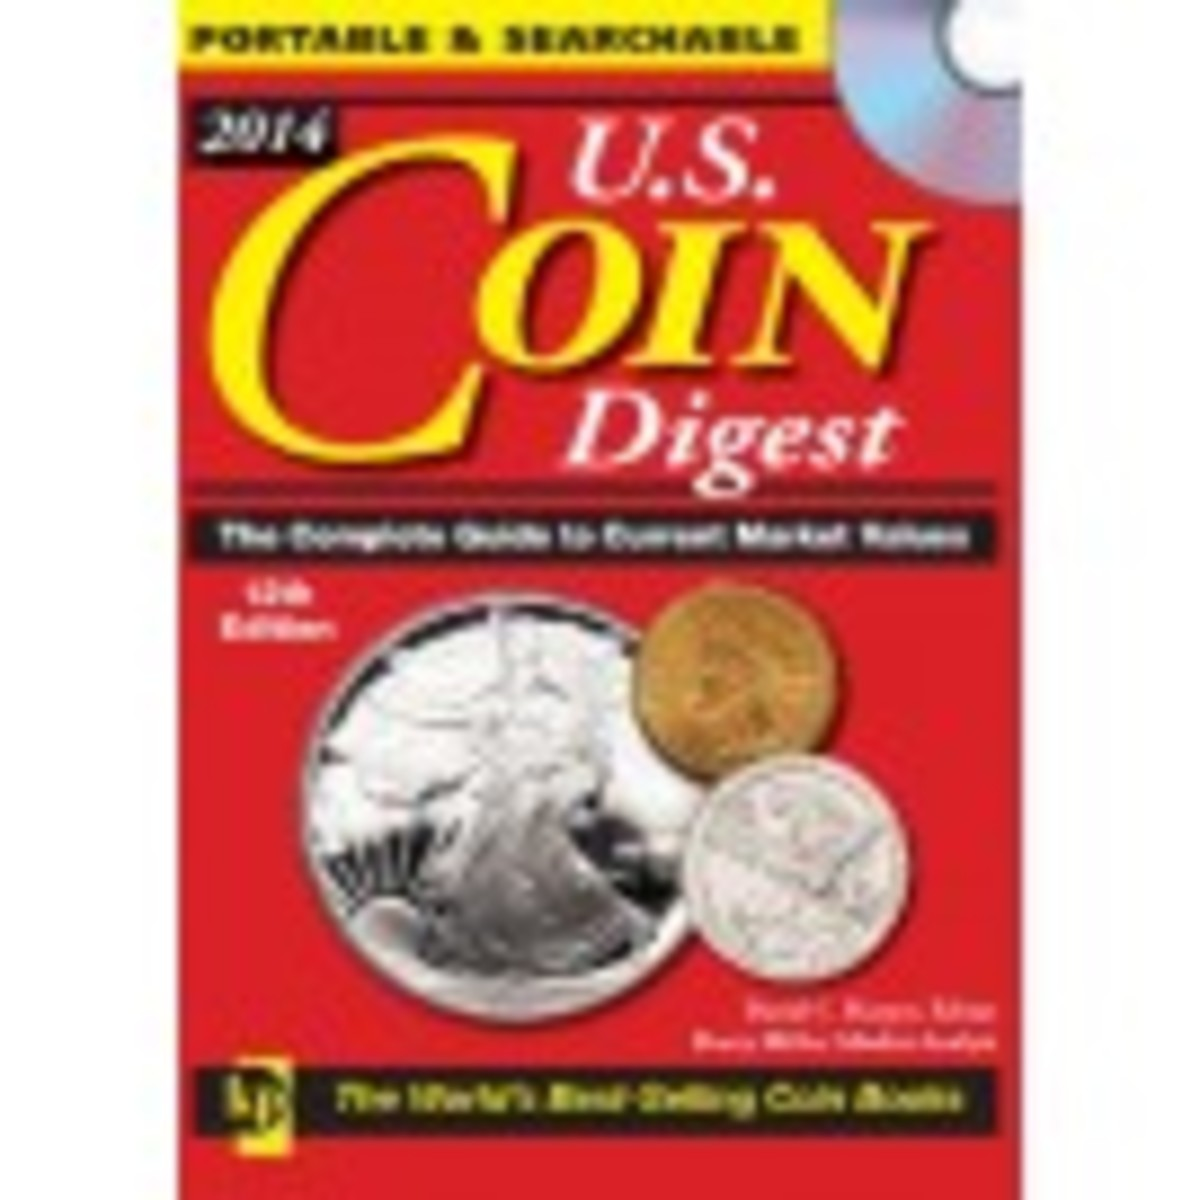 Everything you need for collecting U.S. coins is on this CD.